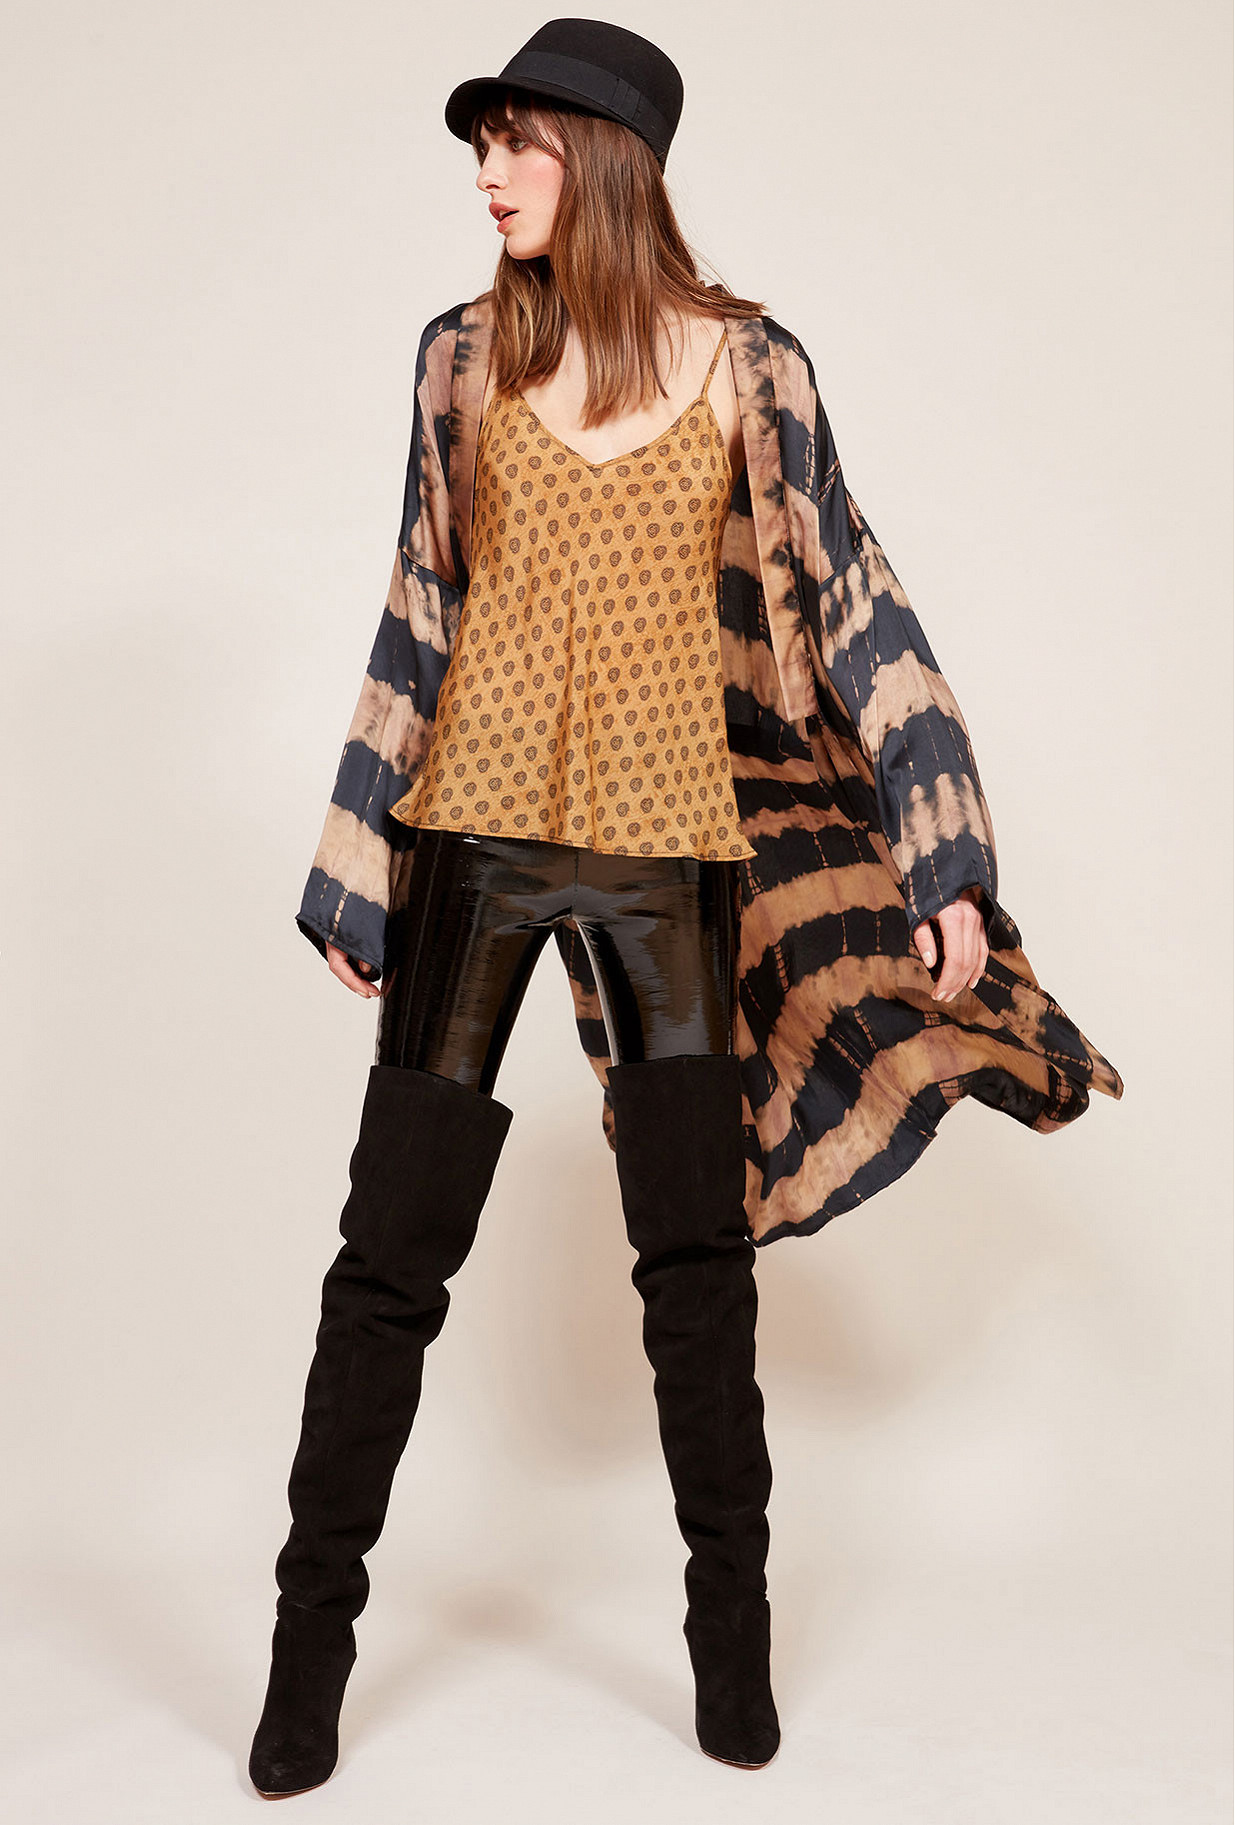 Paris clothes store Kimono  Donegal french designer fashion Paris